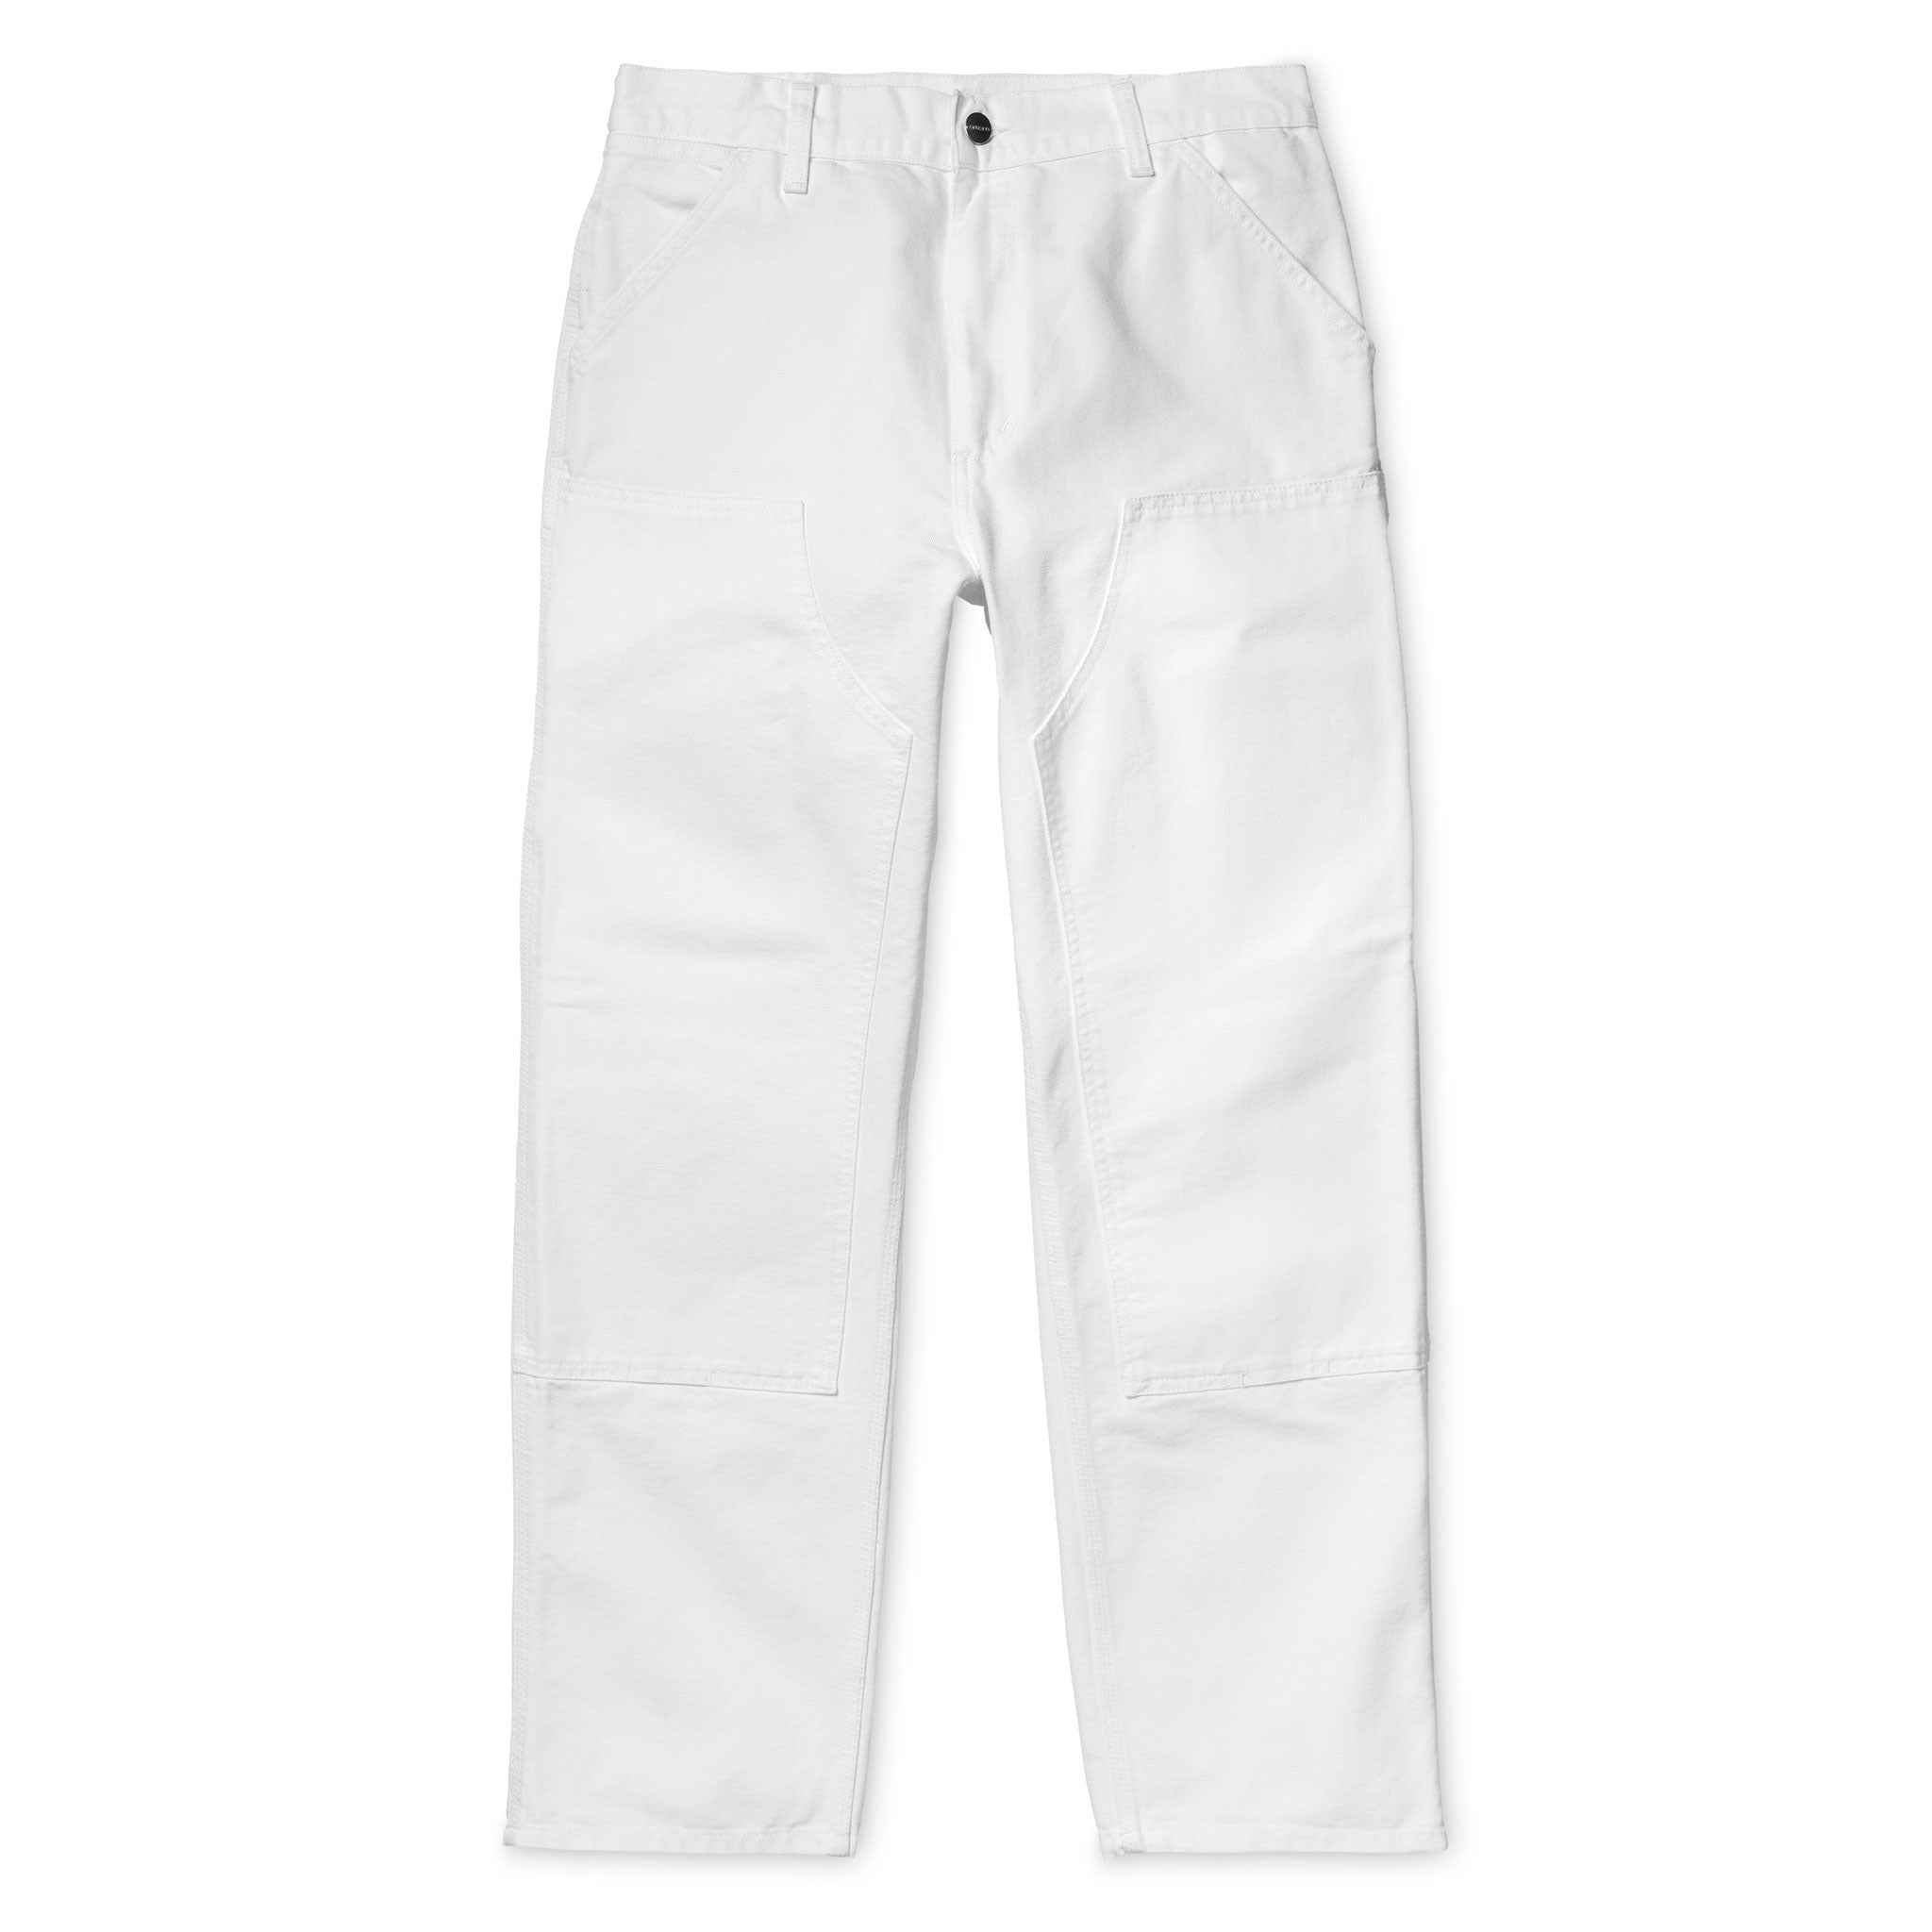 Double Knee Pant Aged Canvas Wax L32 I026489